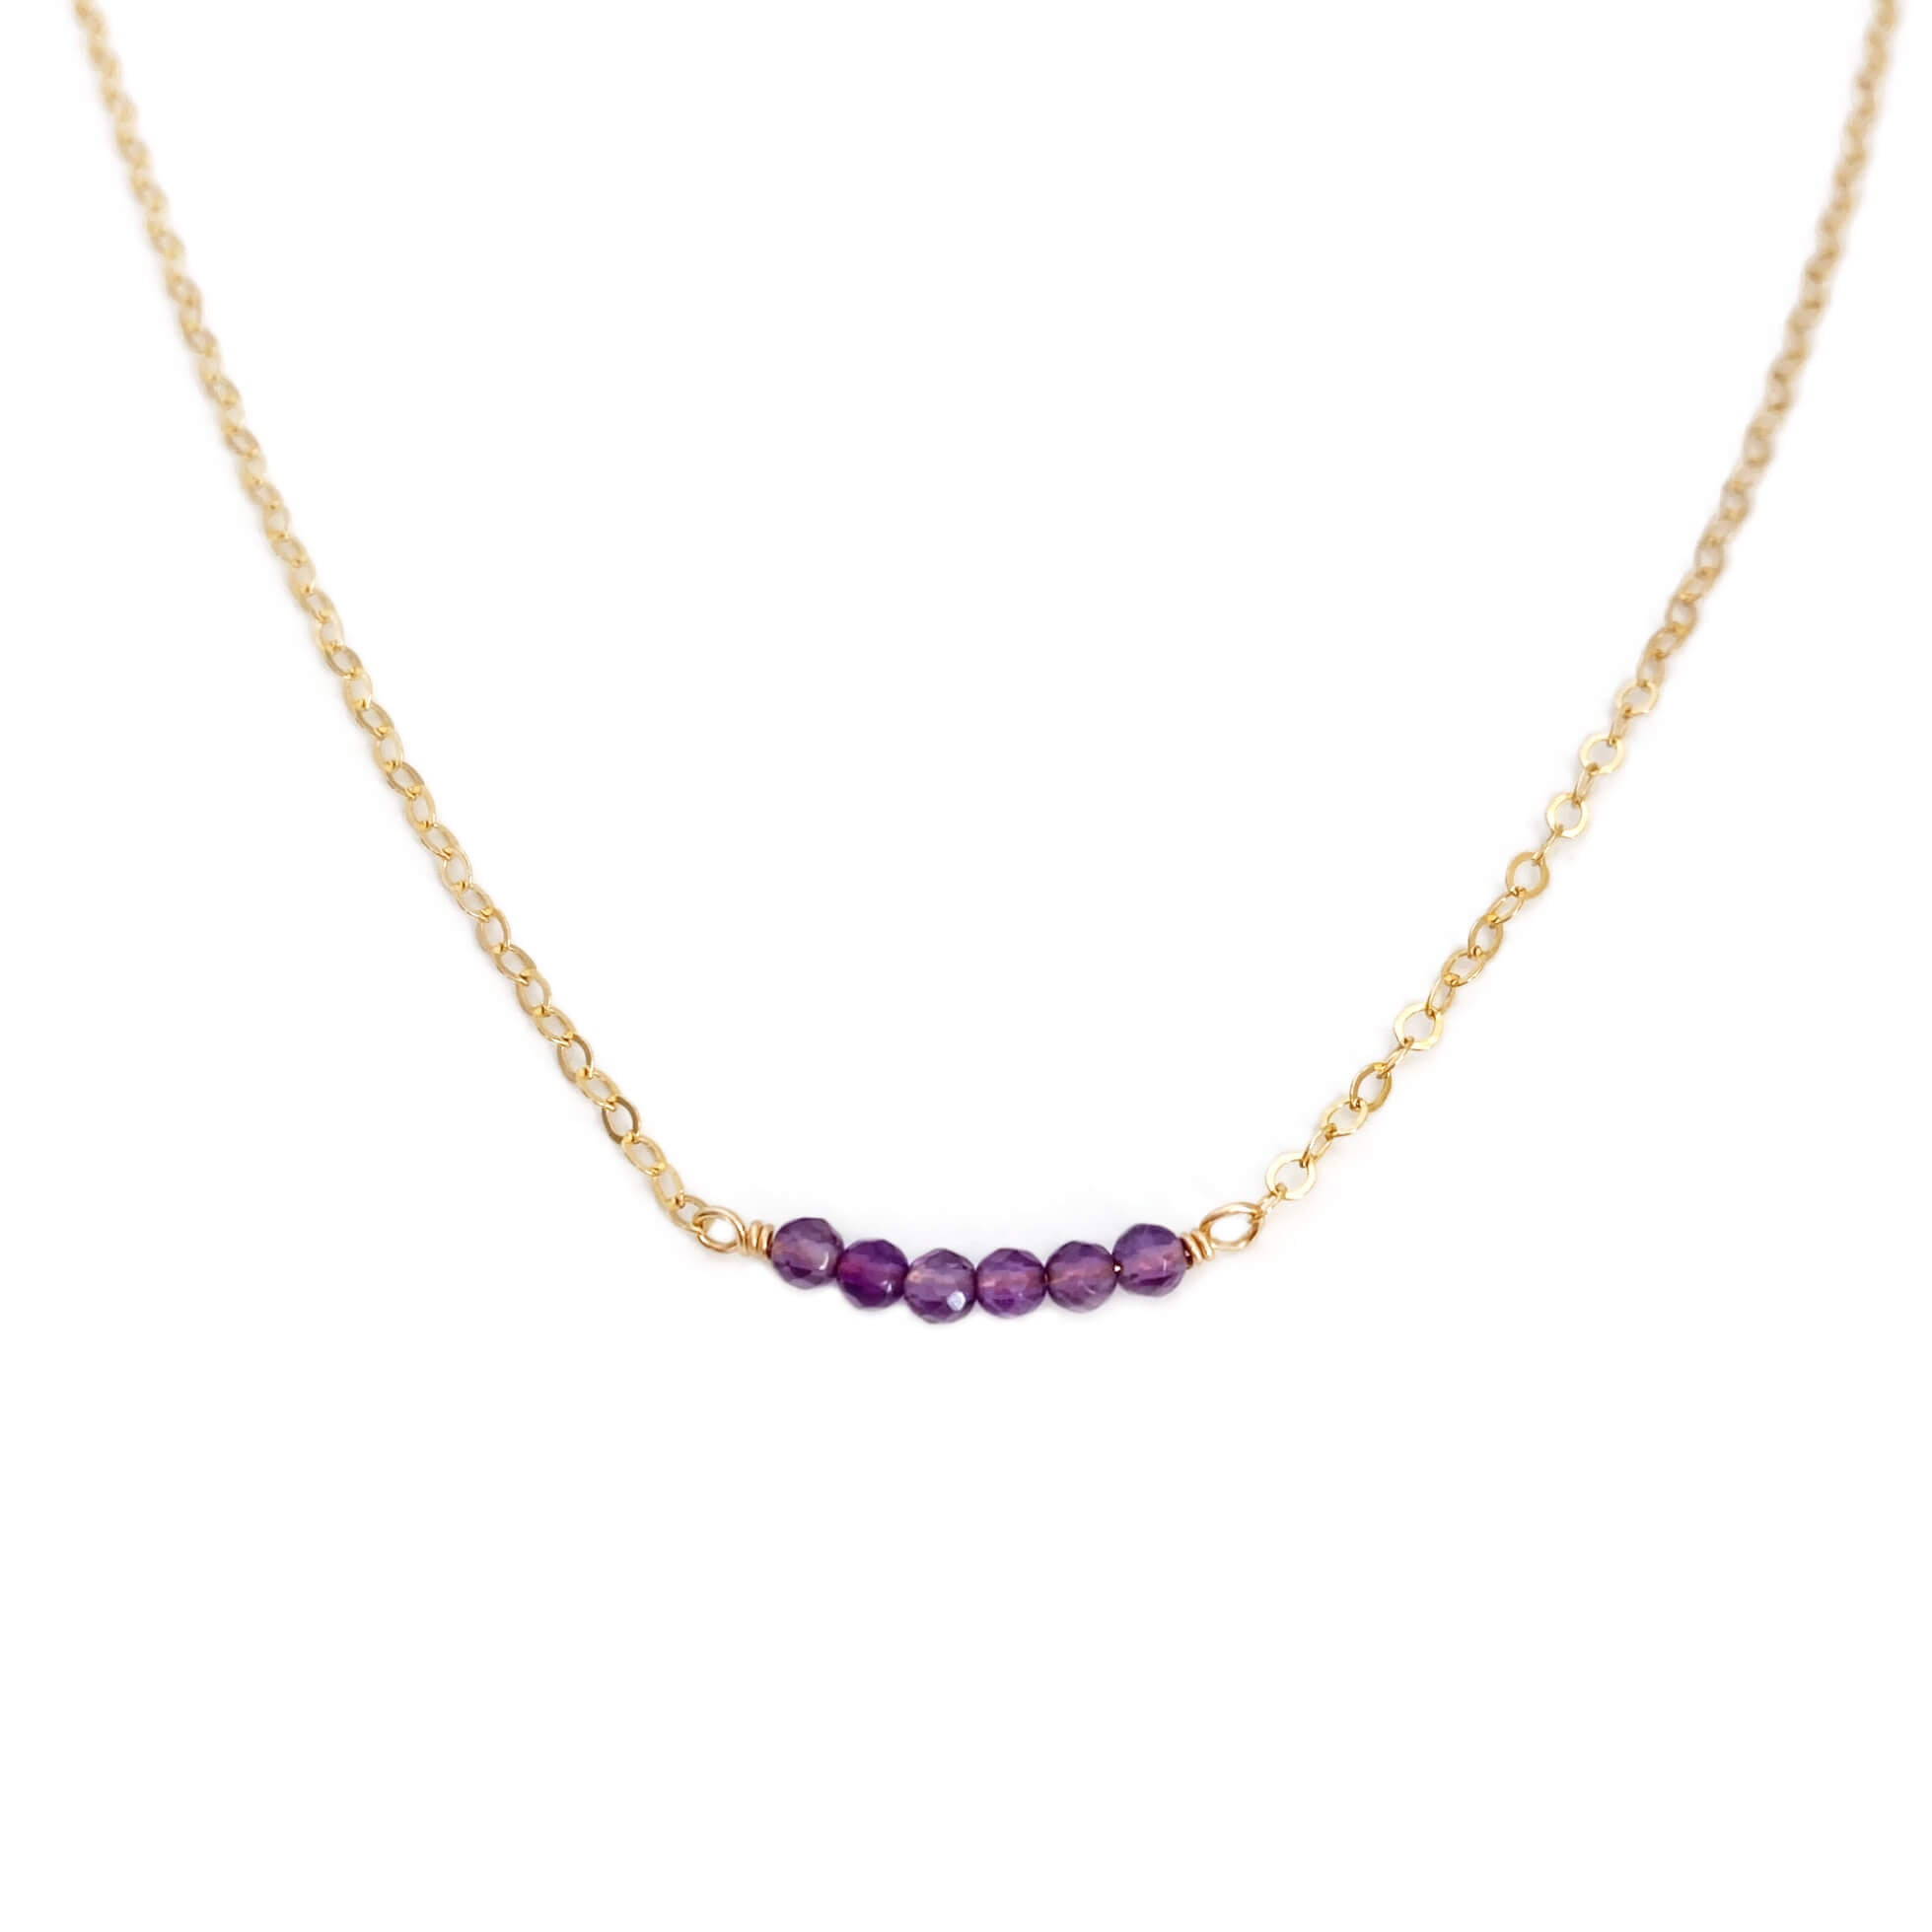 Dainty amethyst bead necklace is made of genuine amethyst beads and 14k gold chain.  It also can be made in gold filled or sterling silver chain with extender.